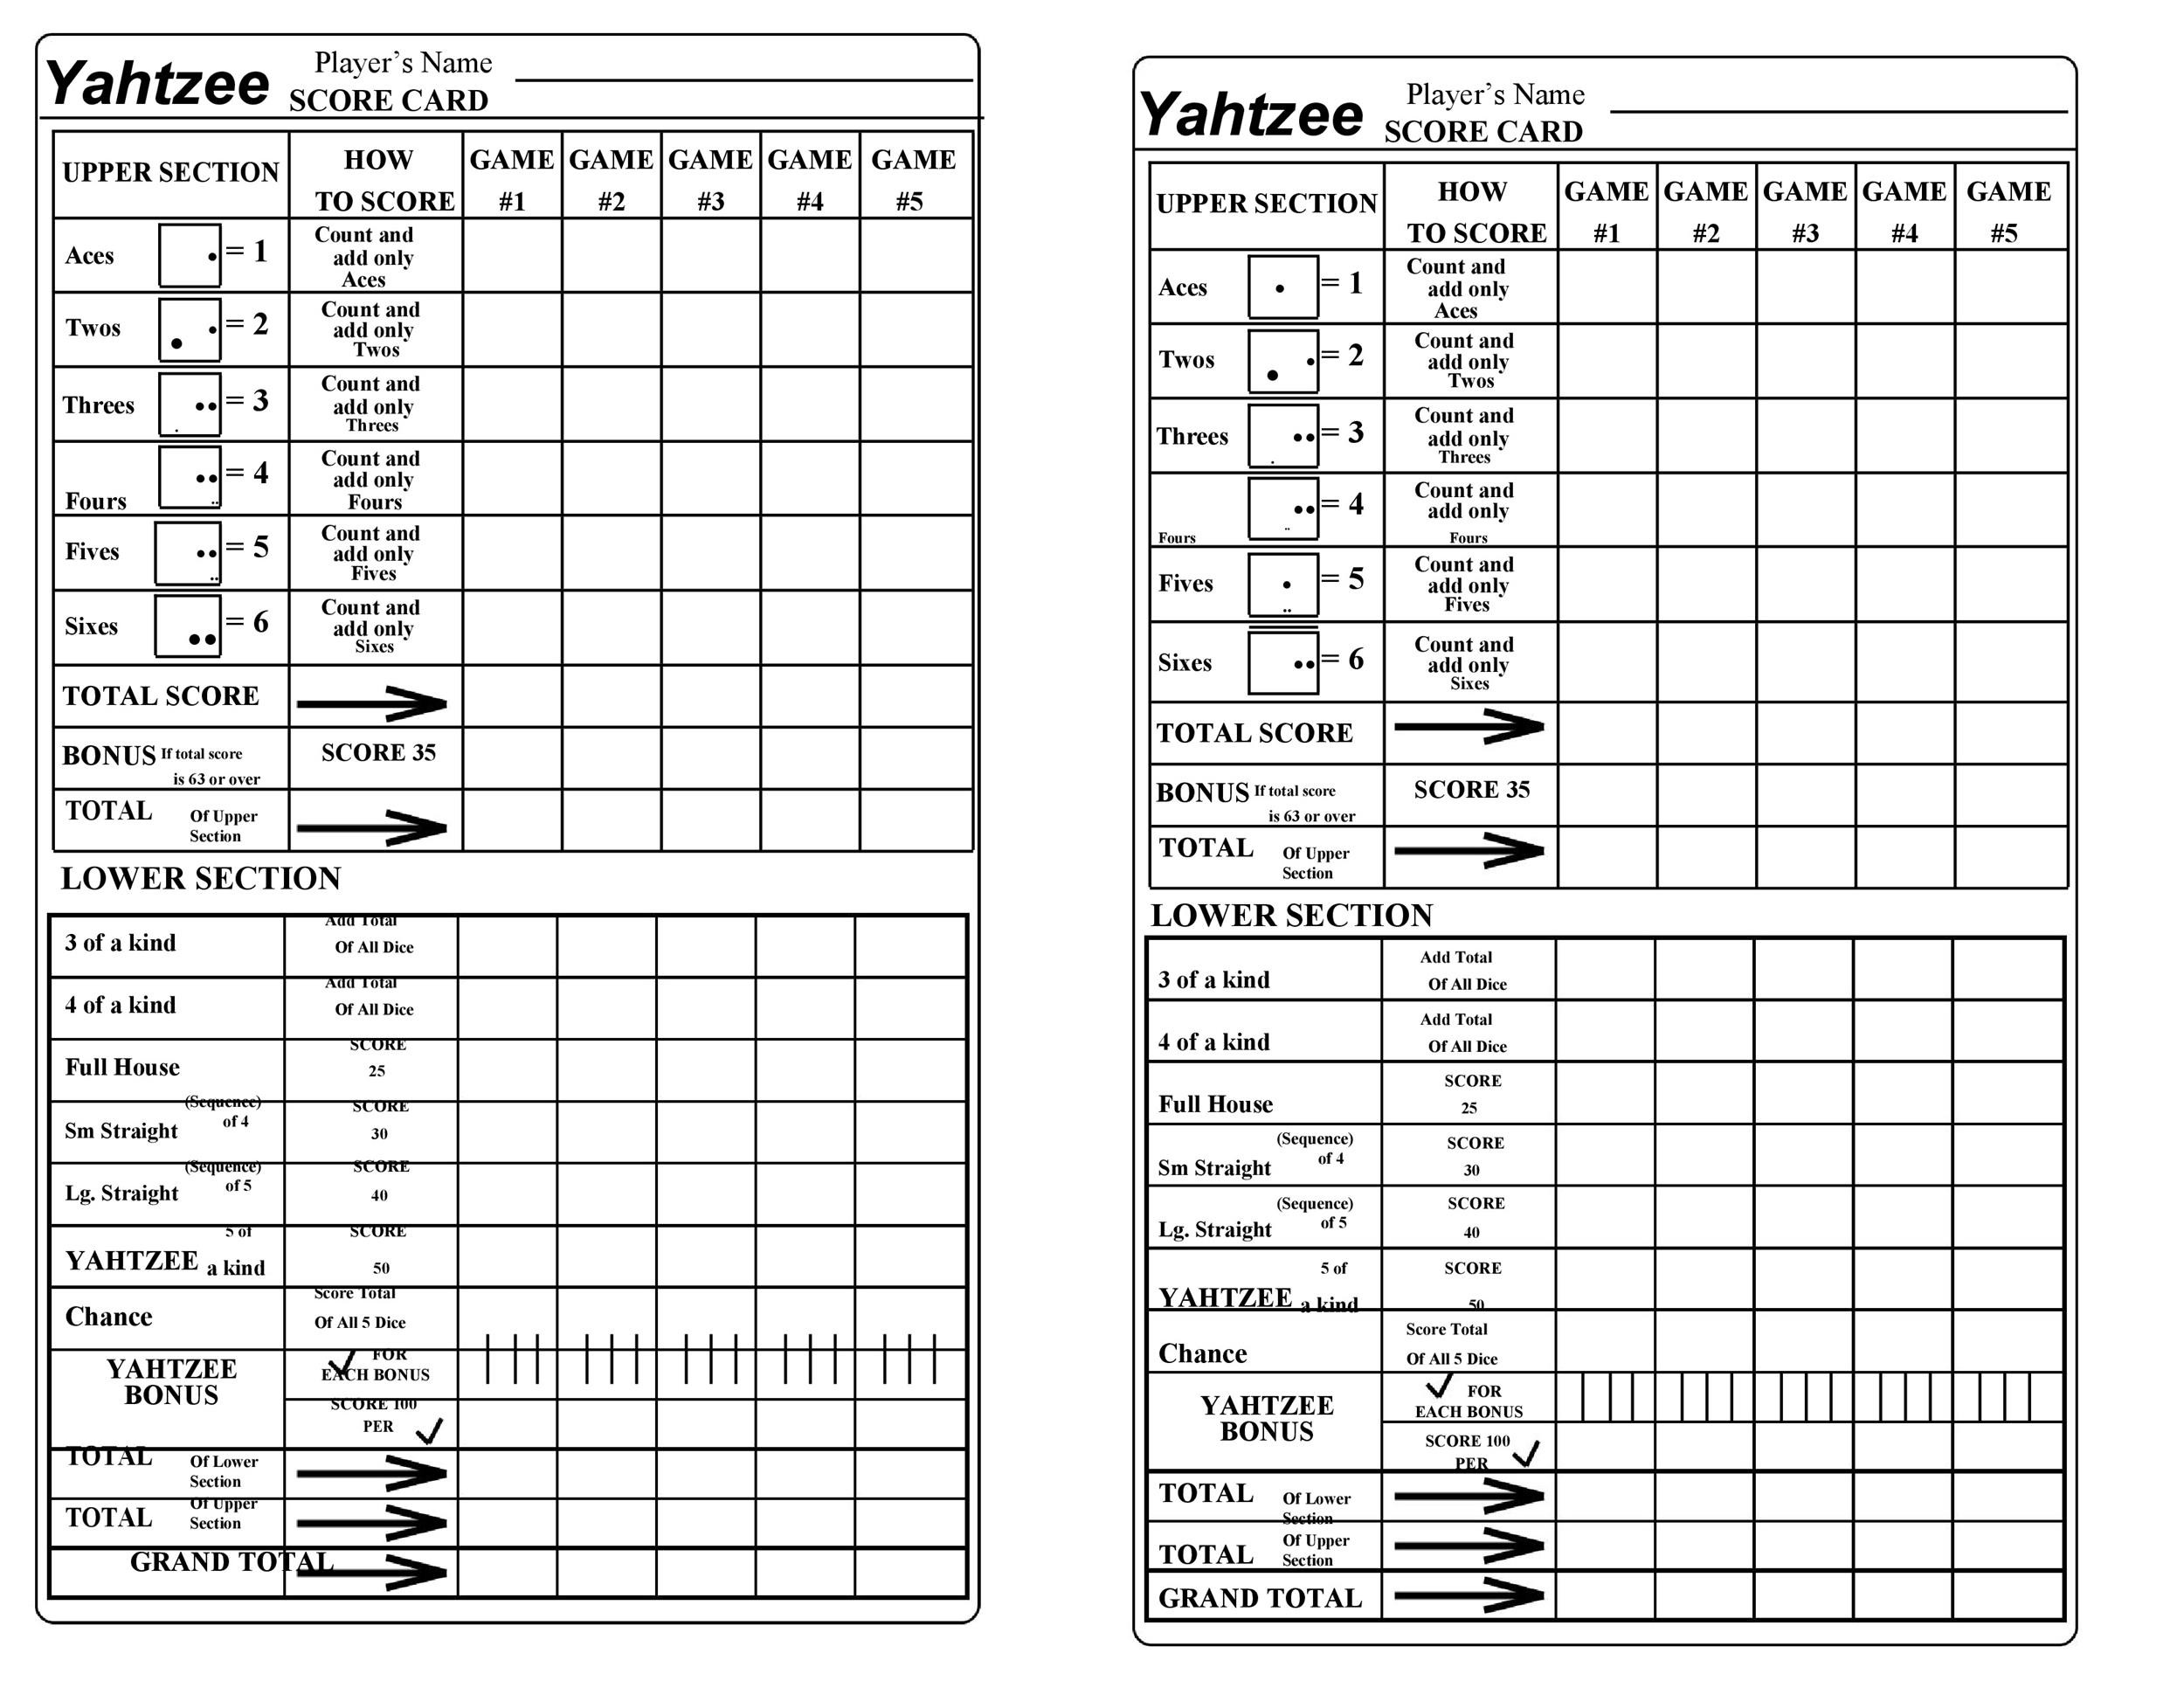 photograph relating to Free Printable Yahtzee Score Cards called 28 Printable Yahtzee Ranking Sheets Playing cards (101% No cost) ᐅ